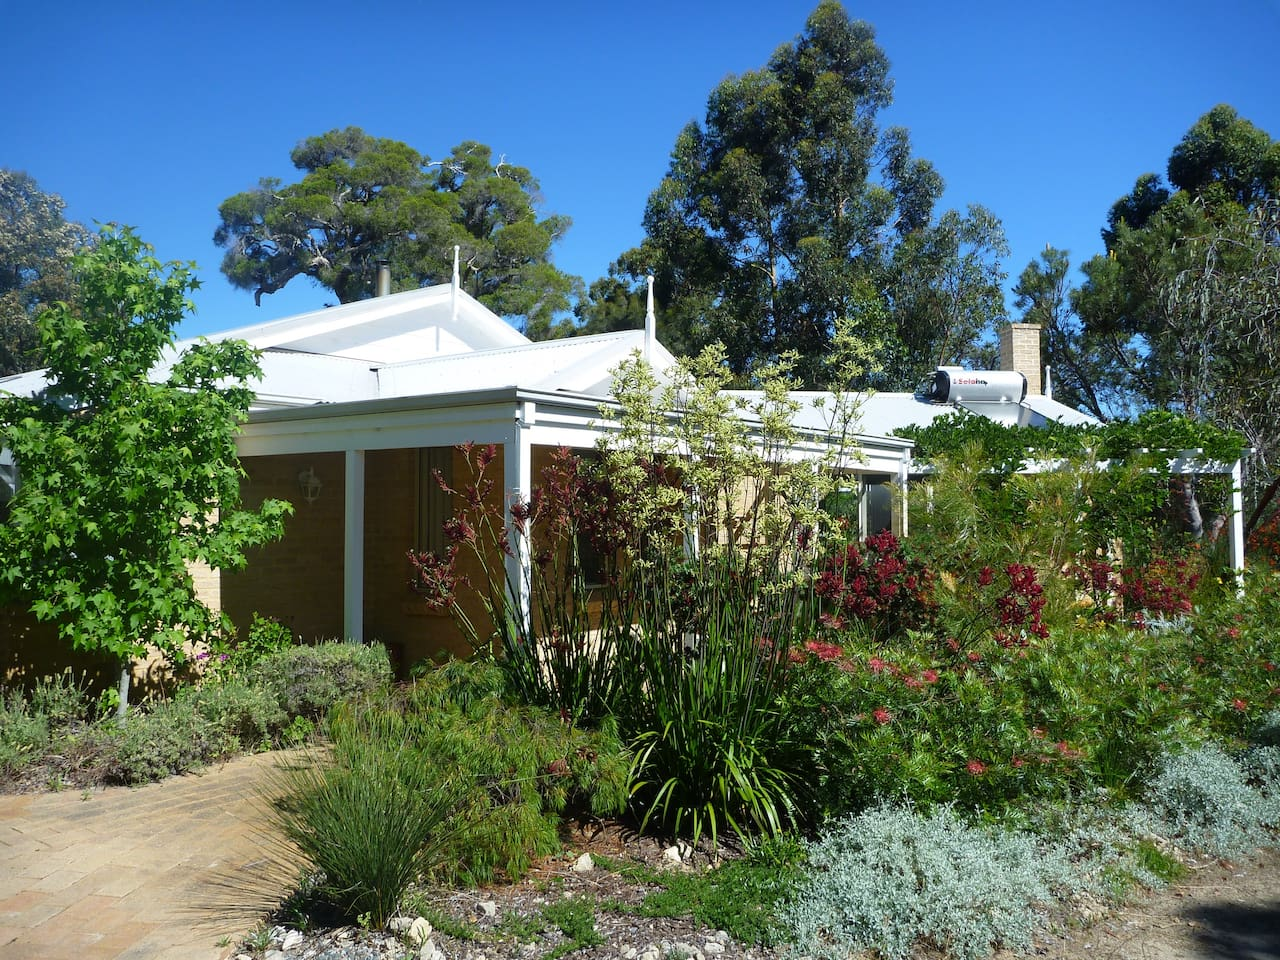 A home among the gumtrees. A view from every window